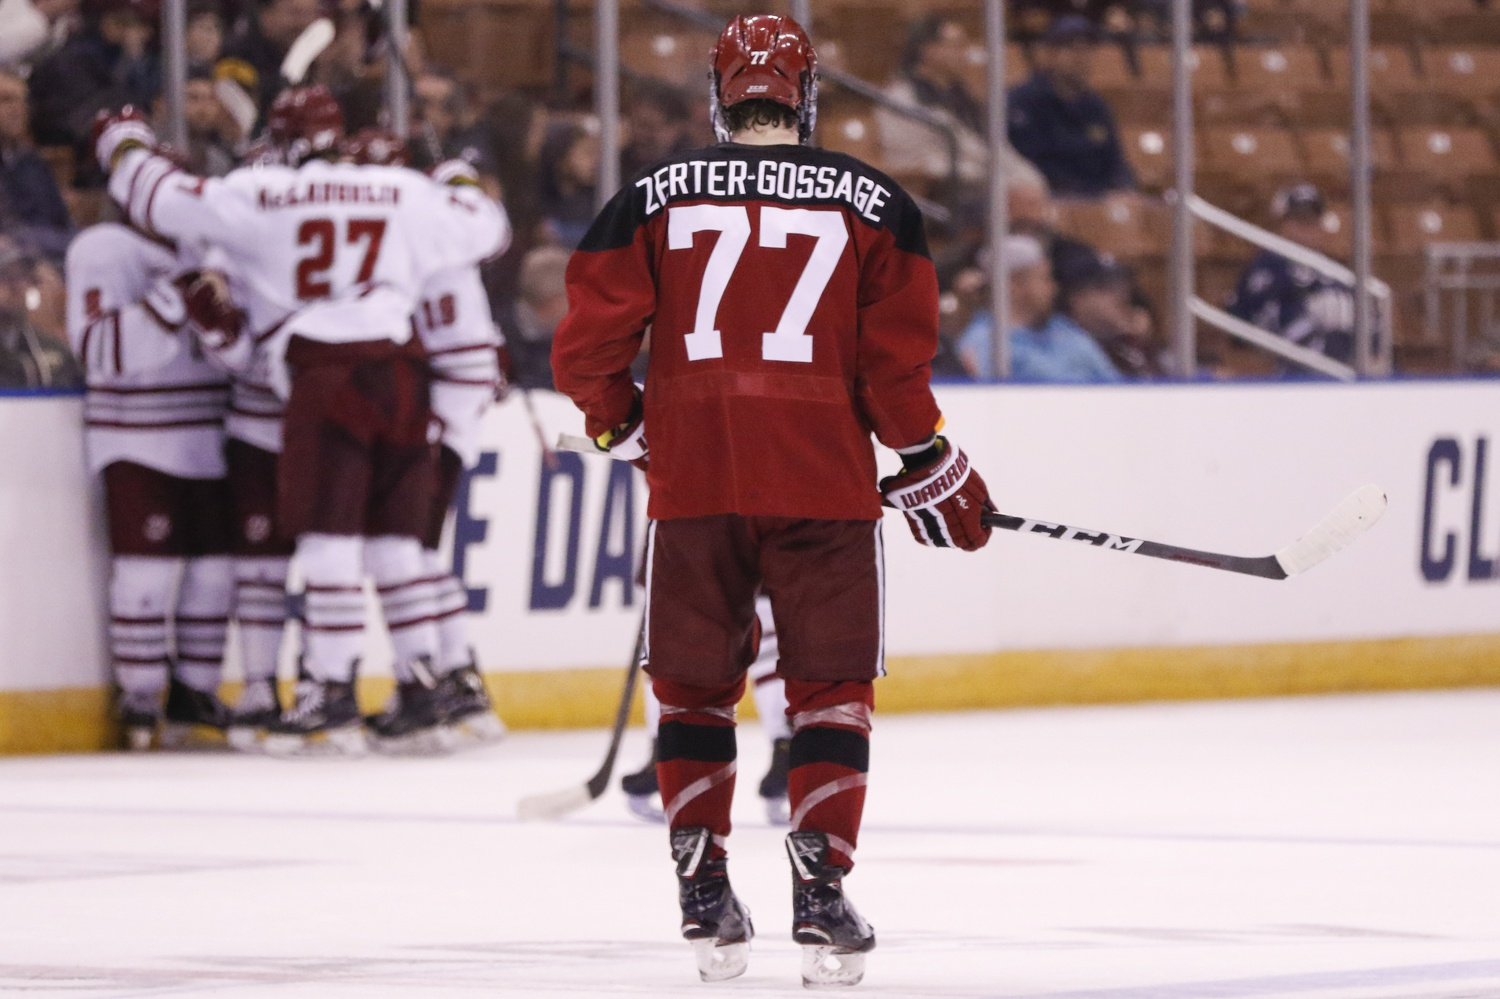 Following the third UMass goal, Harvard was left searching for answers but failed to respond, eventually falling 4-0.